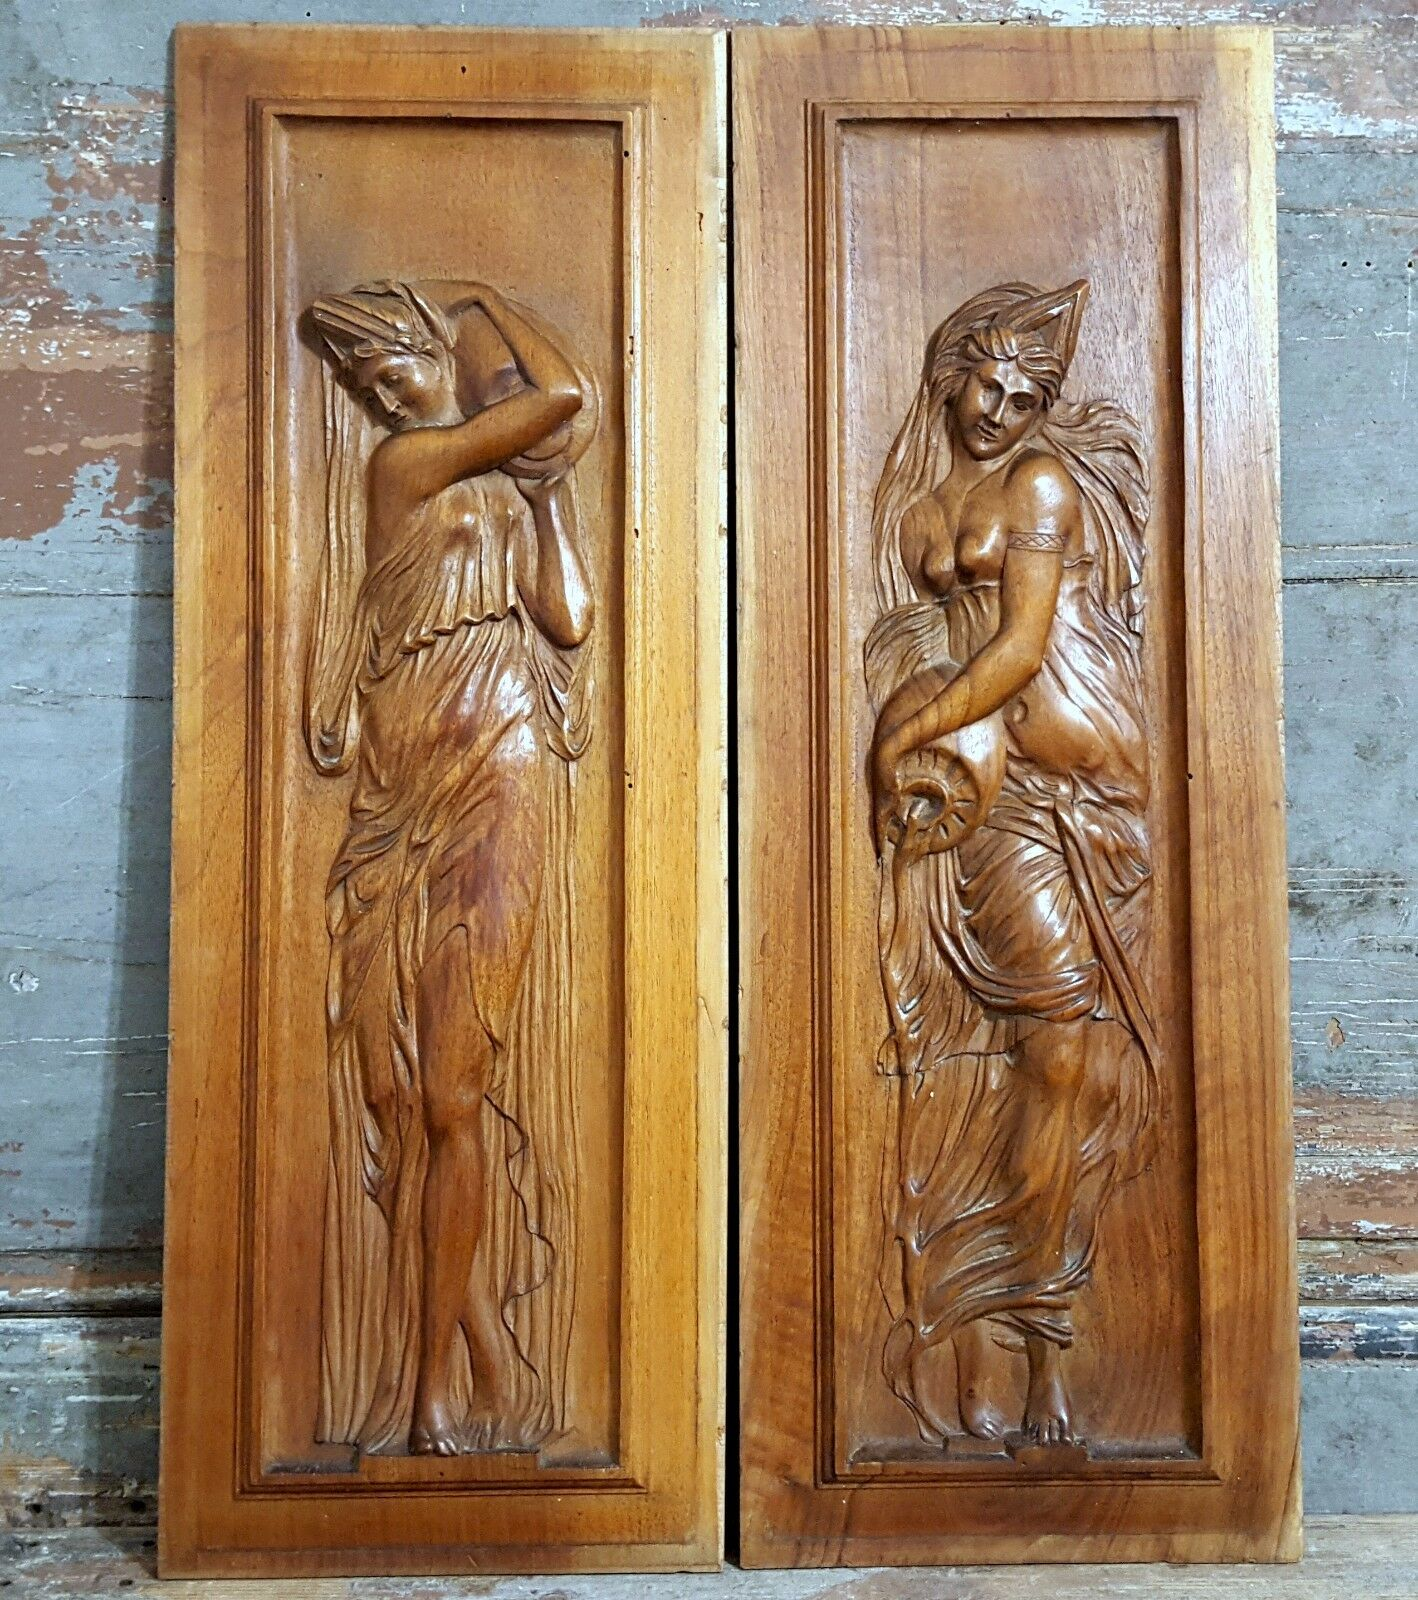 MATCHED PAIR CARVED WOOD PANEL ANTIQUE FRENCH WOMAN LADY SCULPTURE CARVING 19th